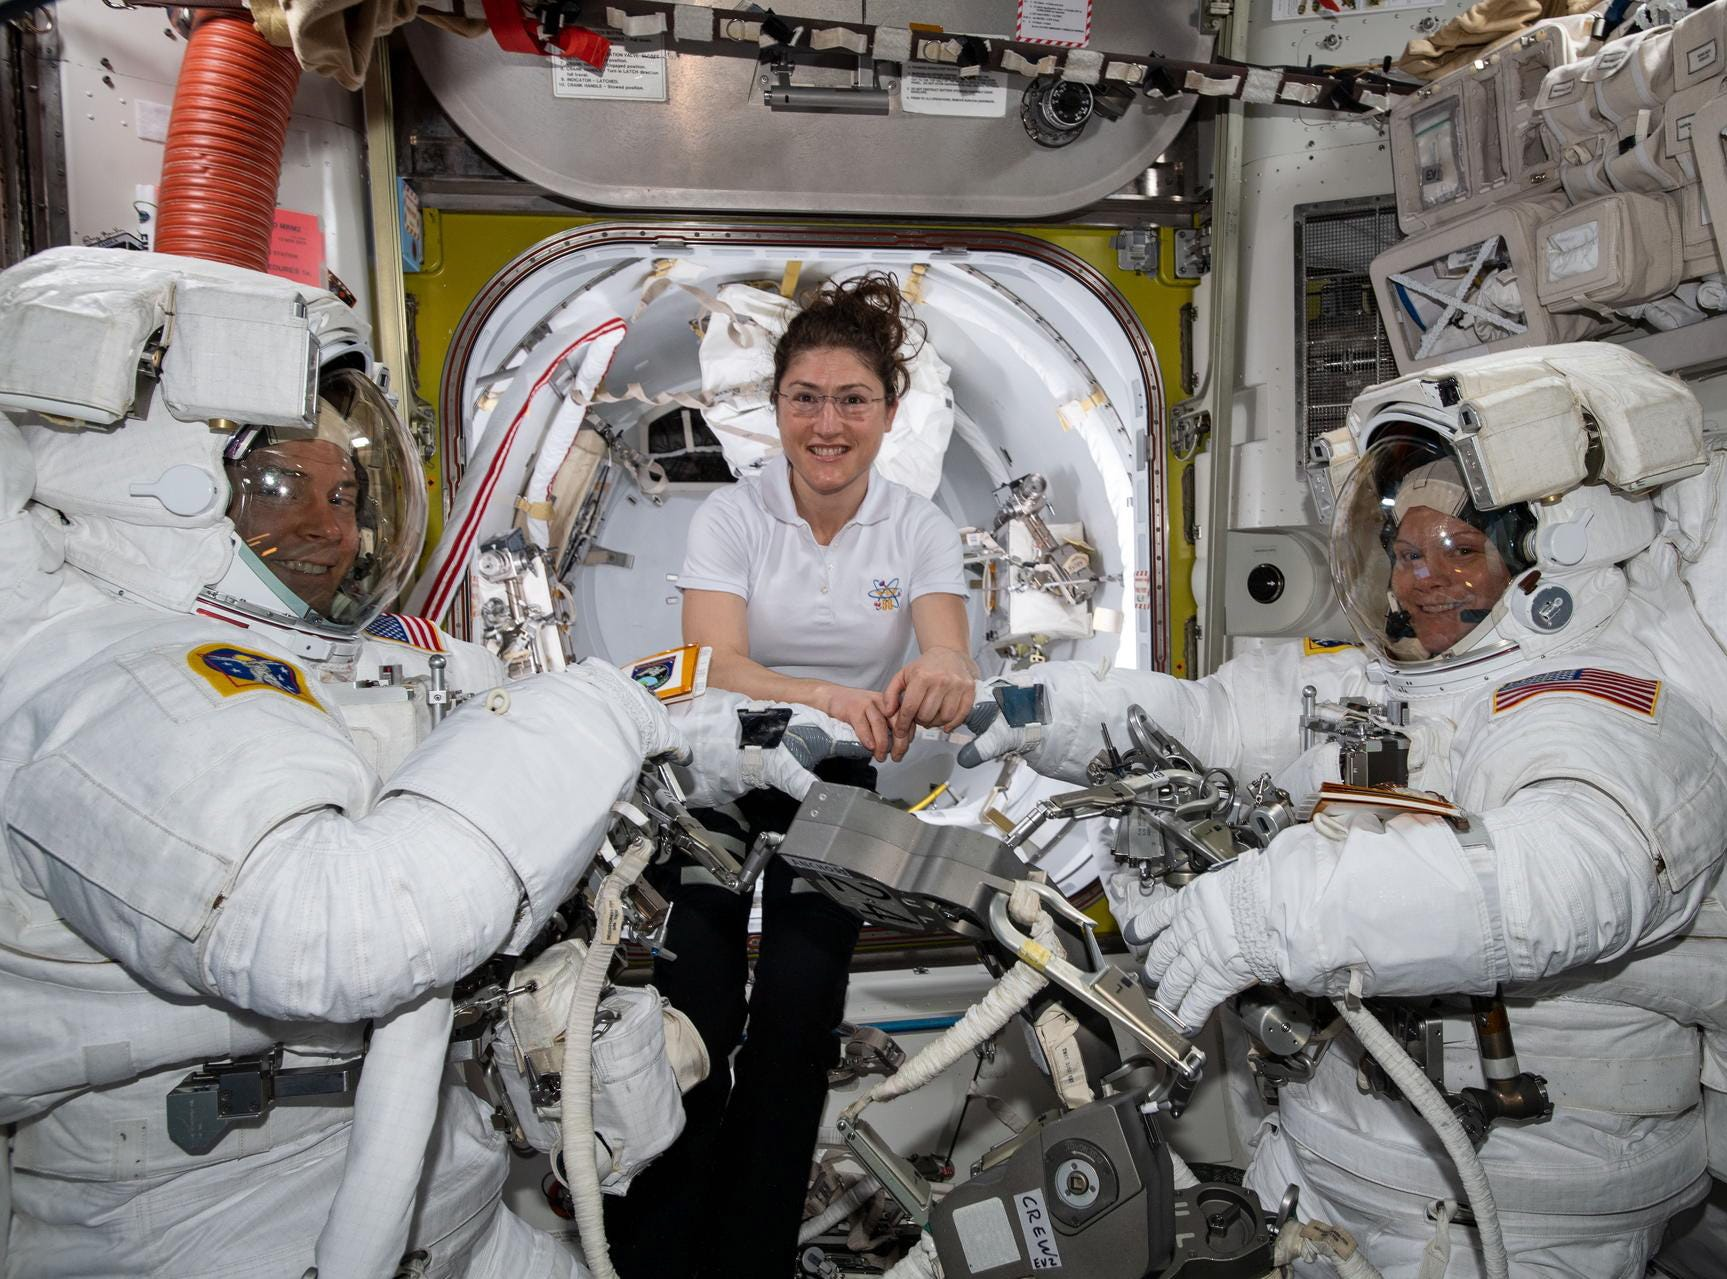 NASA astronaut Christina Koch assists fellow astronauts Nick Hague and Anne McClain  in their spacesuits shortly before they begin the first spacewalk of their careers, aboard the International Space Station (ISS), March, 22, 2019  NASA cancelled the first all-female spacewalk which was scheduled for March 29,  2019, citing spacesuit issues.